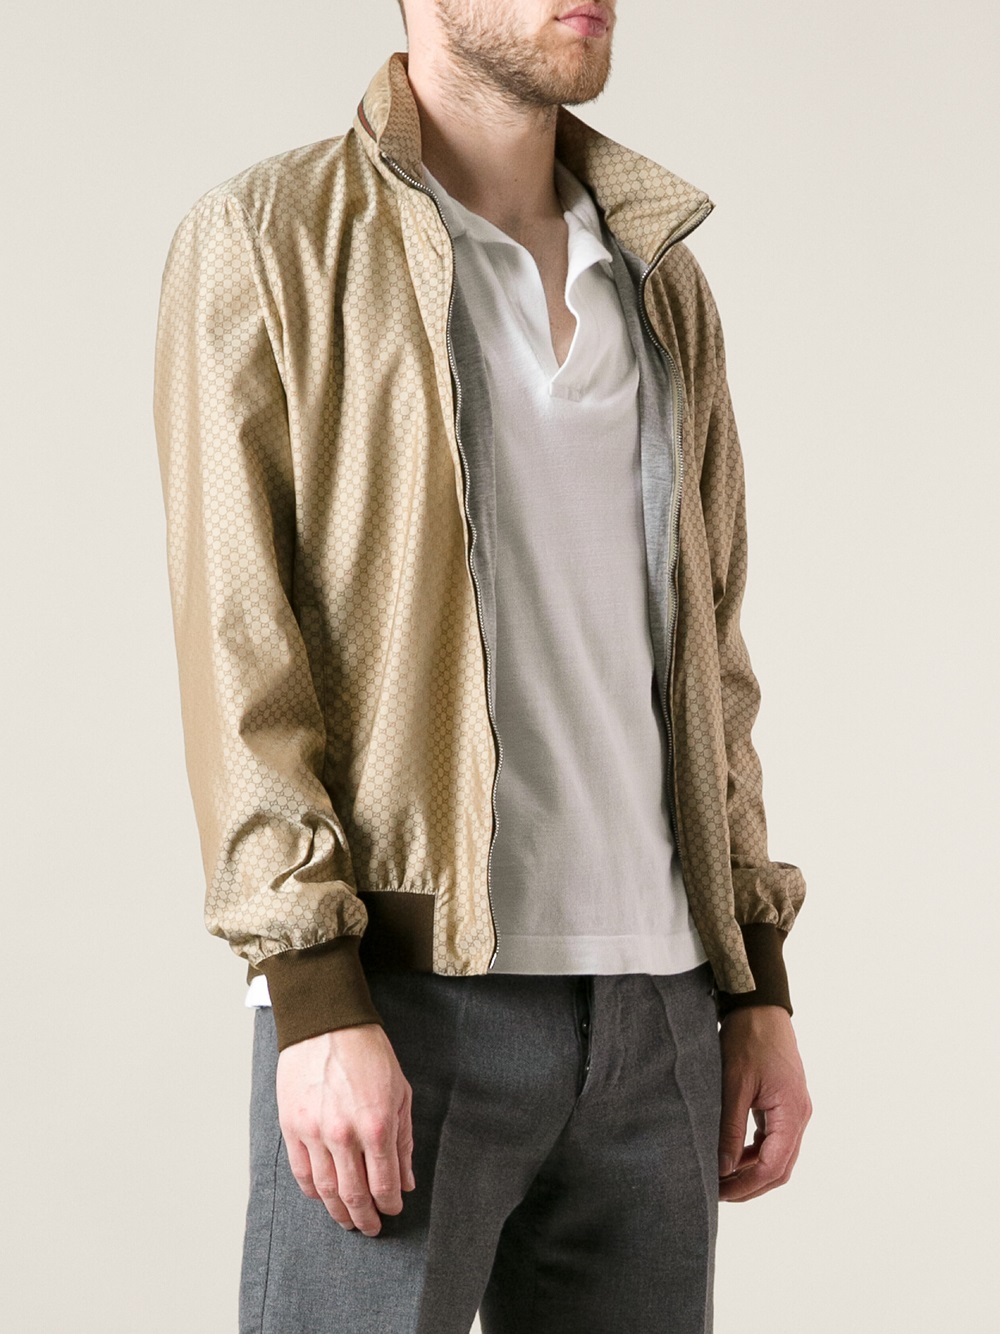 Lyst - Gucci Monogram Bomber Jacket in Brown for Men aad40912e